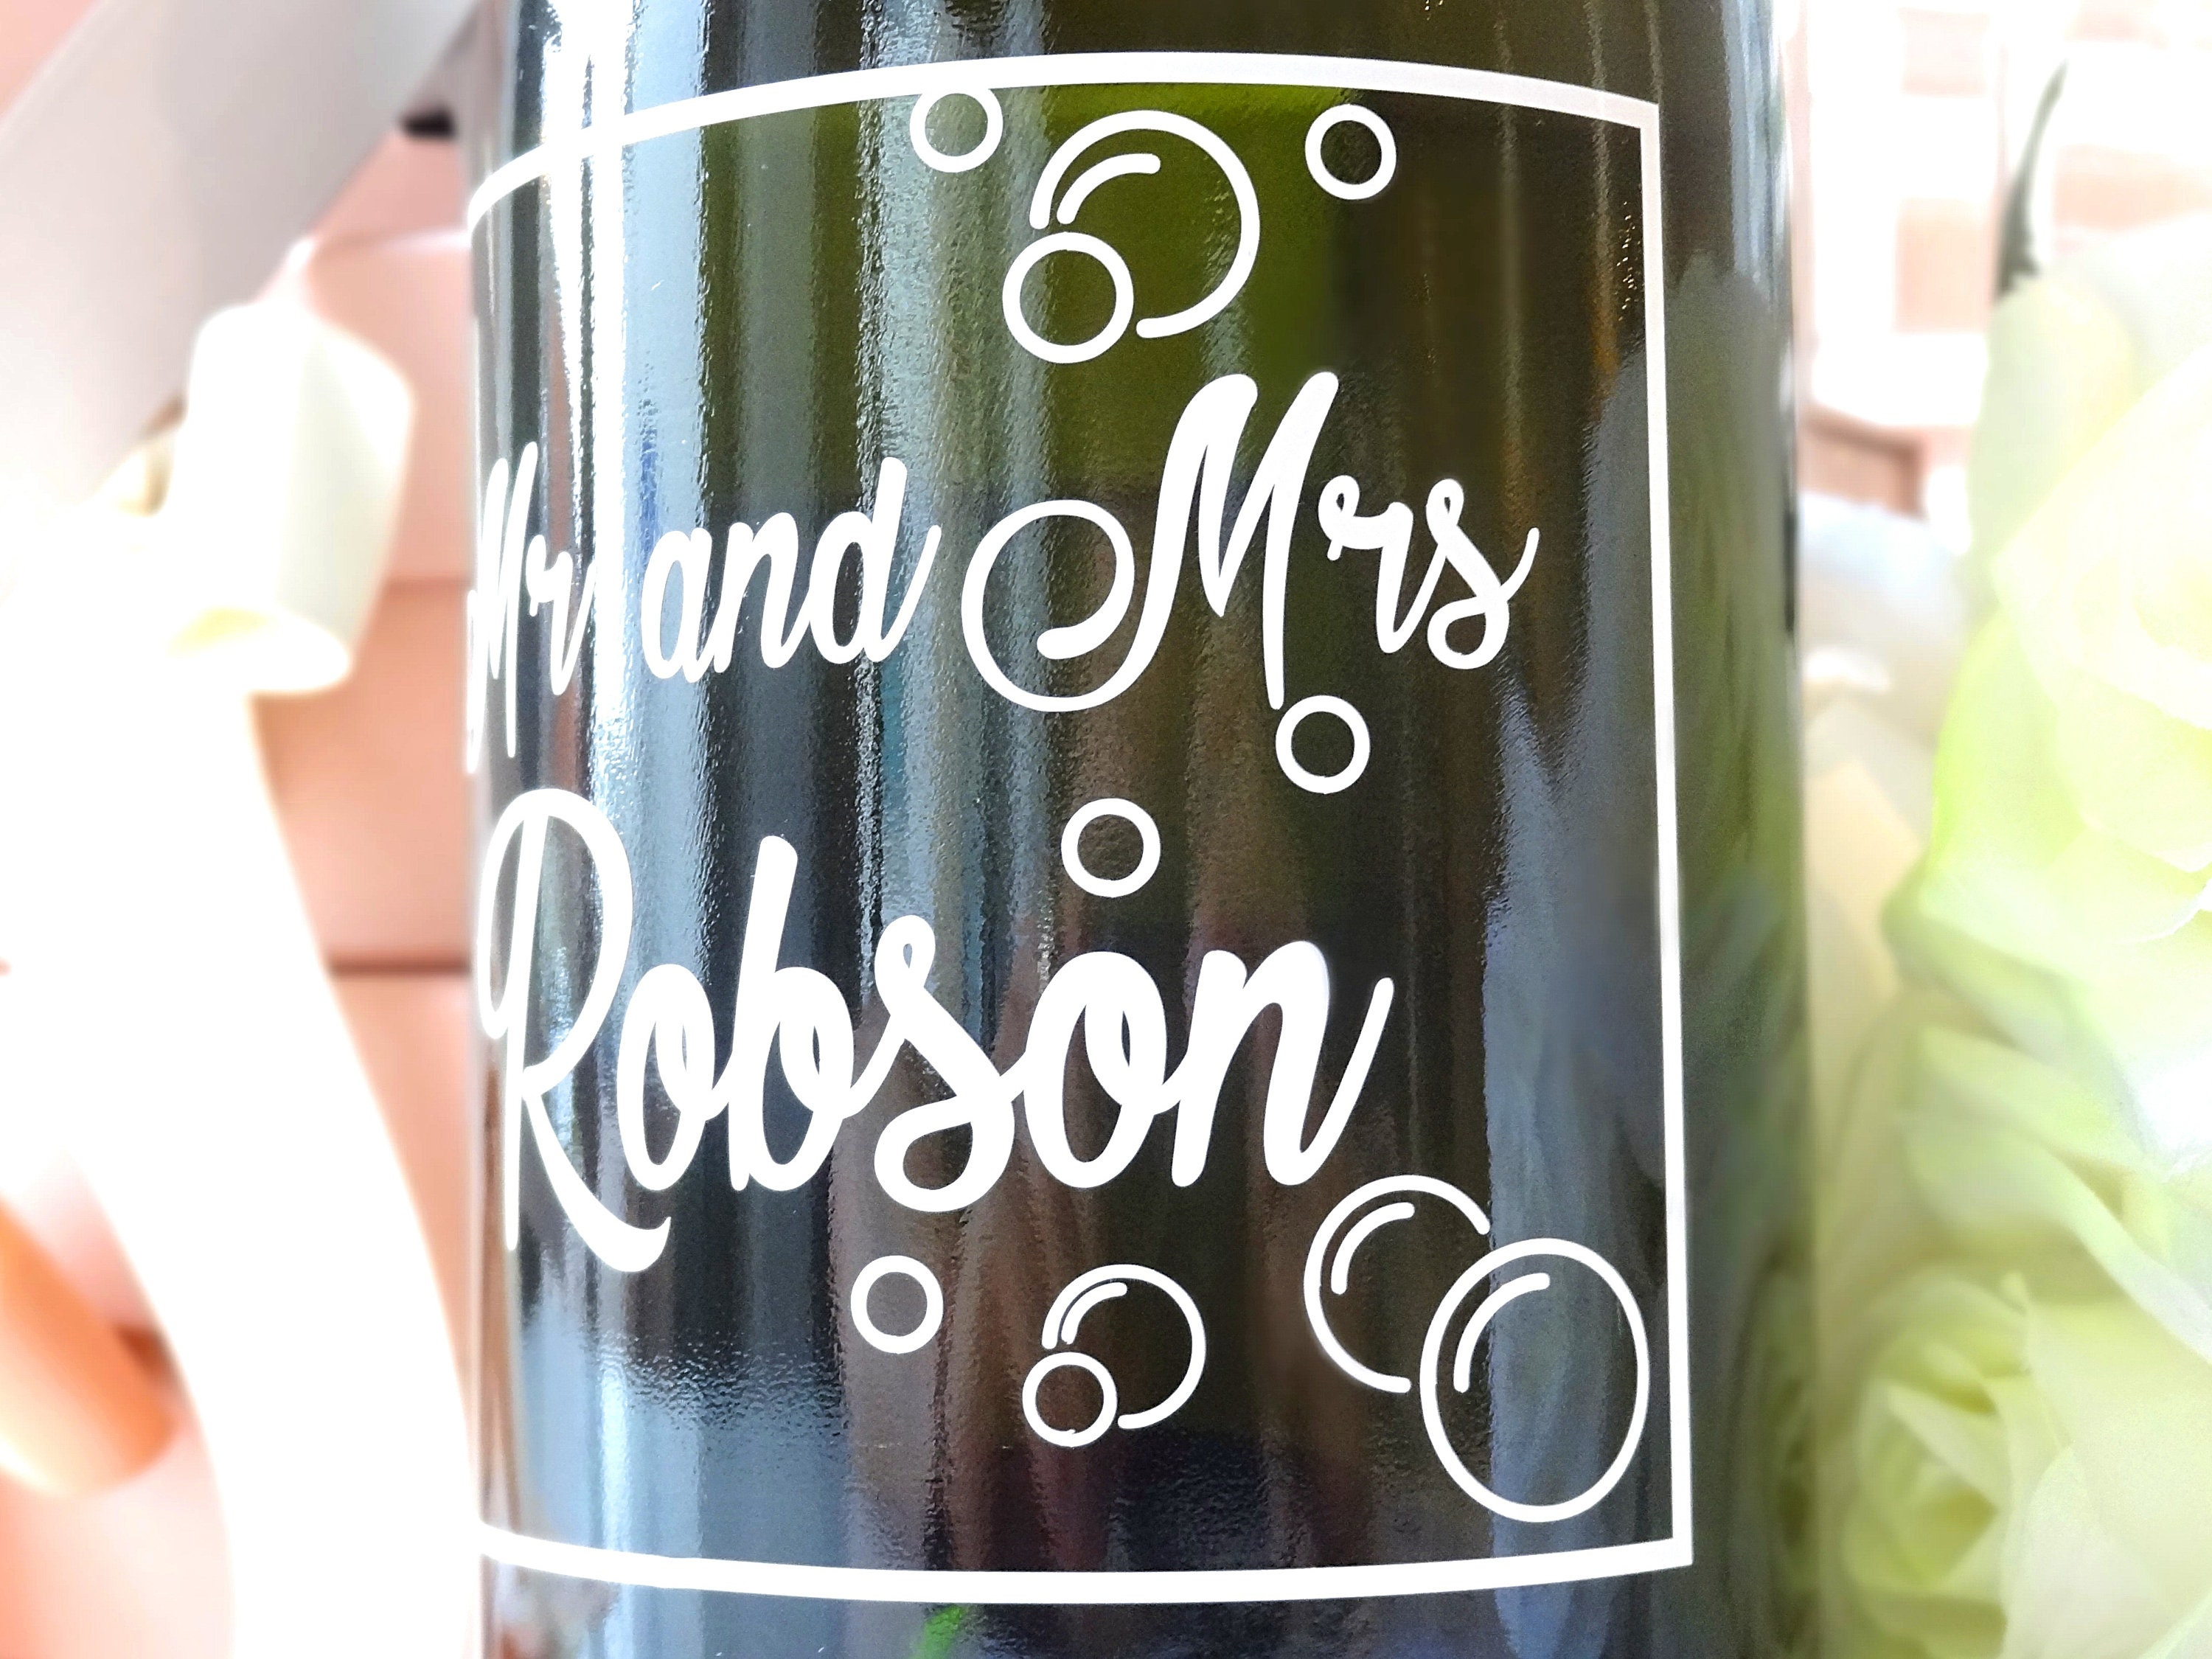 Personalized sticker custom bottle decal wedding favor party decor mr and mrs bottle tag wedding stickers hen party bridal shower